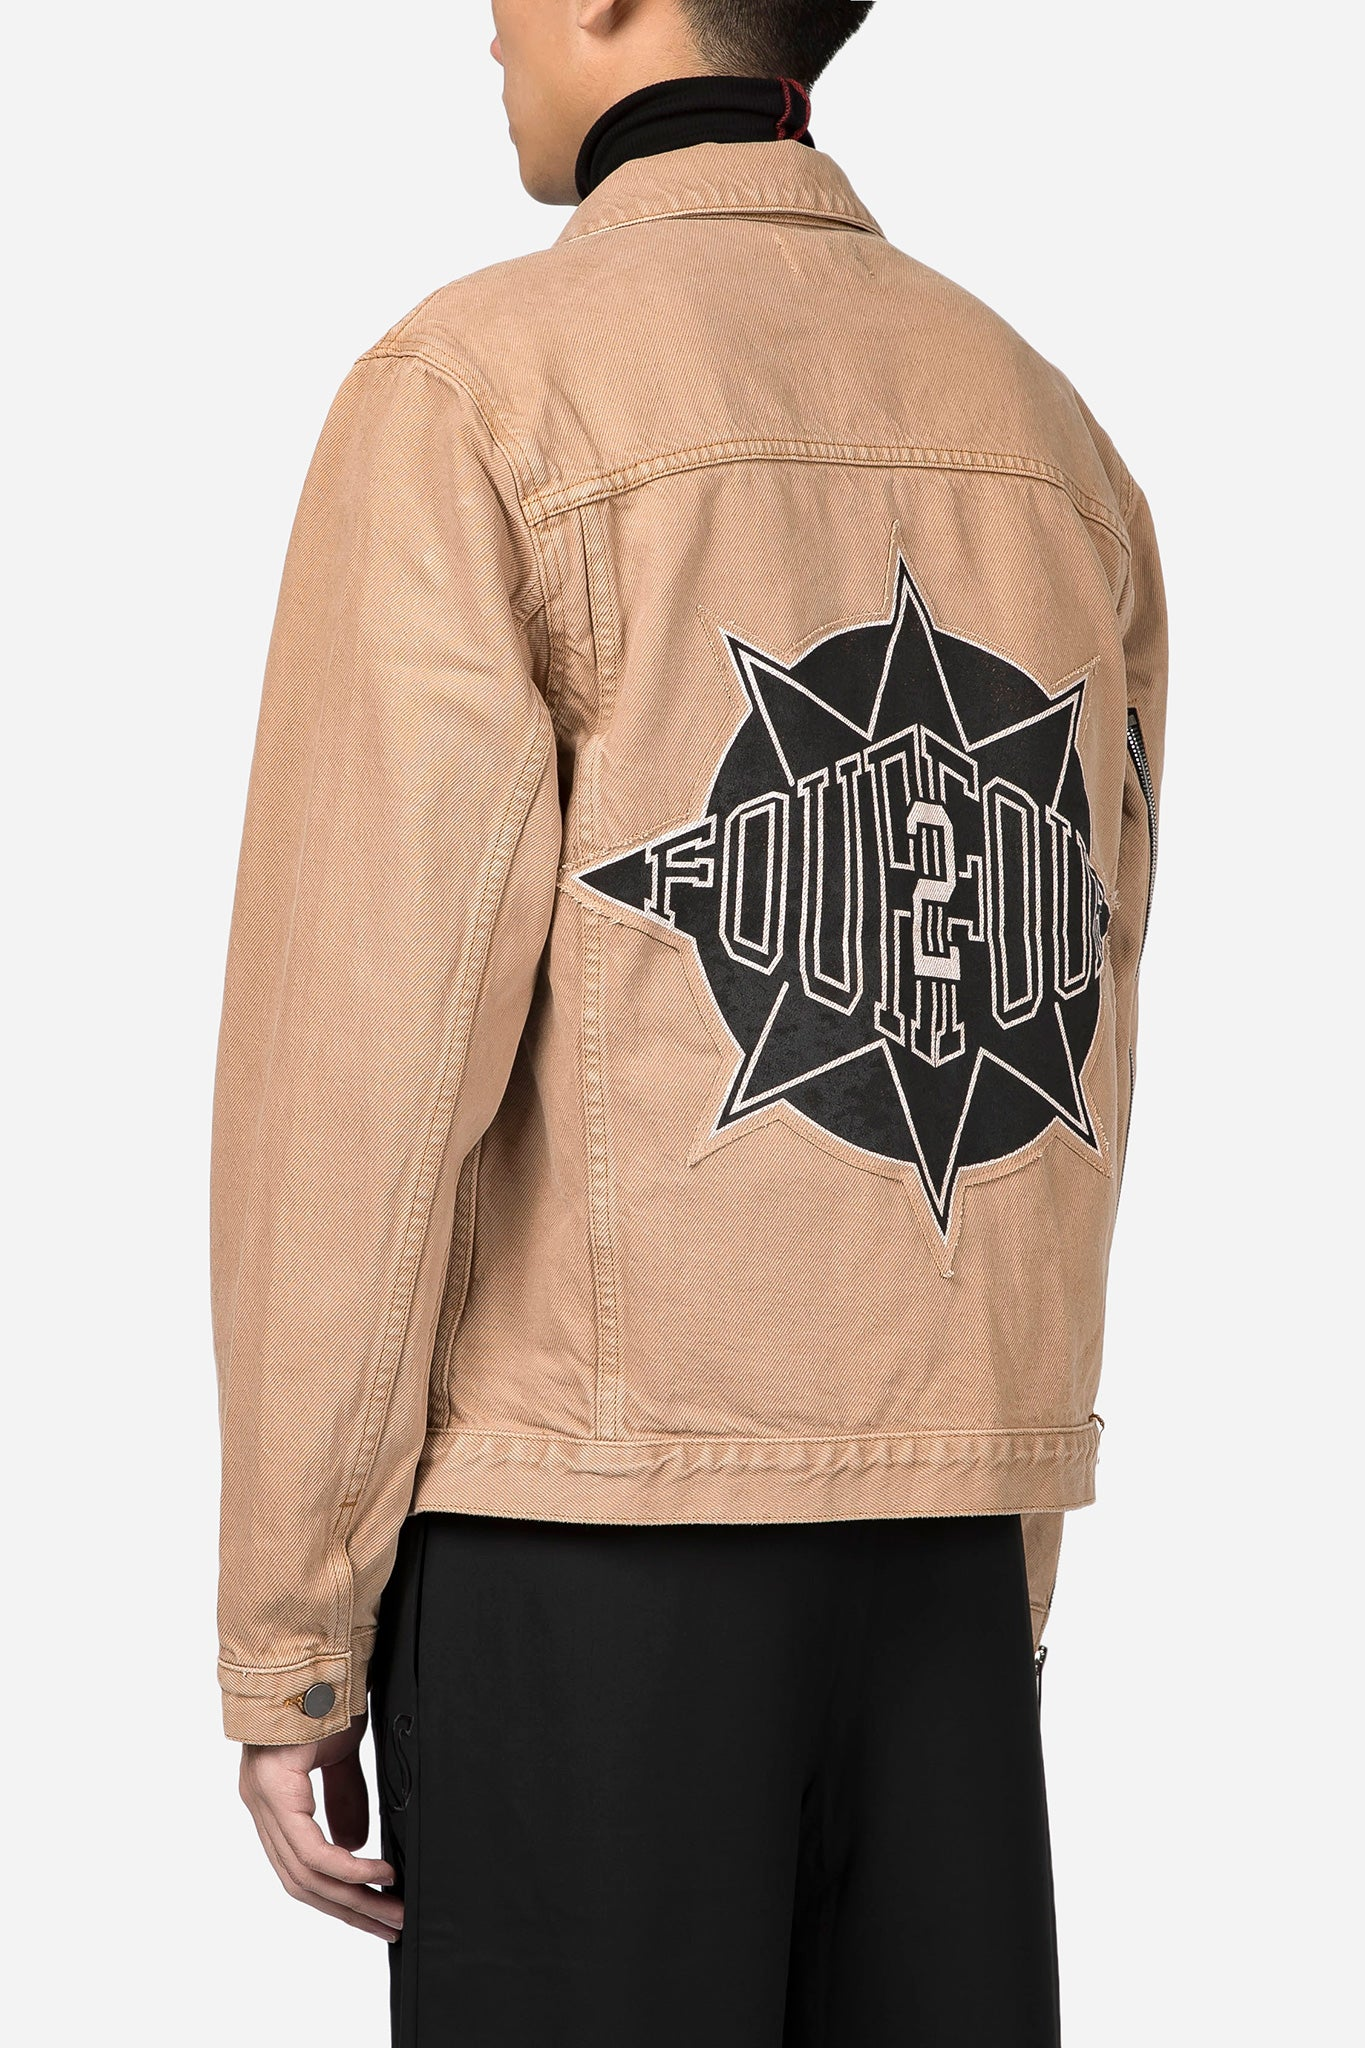 Starr Denim Trucker Jacket Camel Black Starr